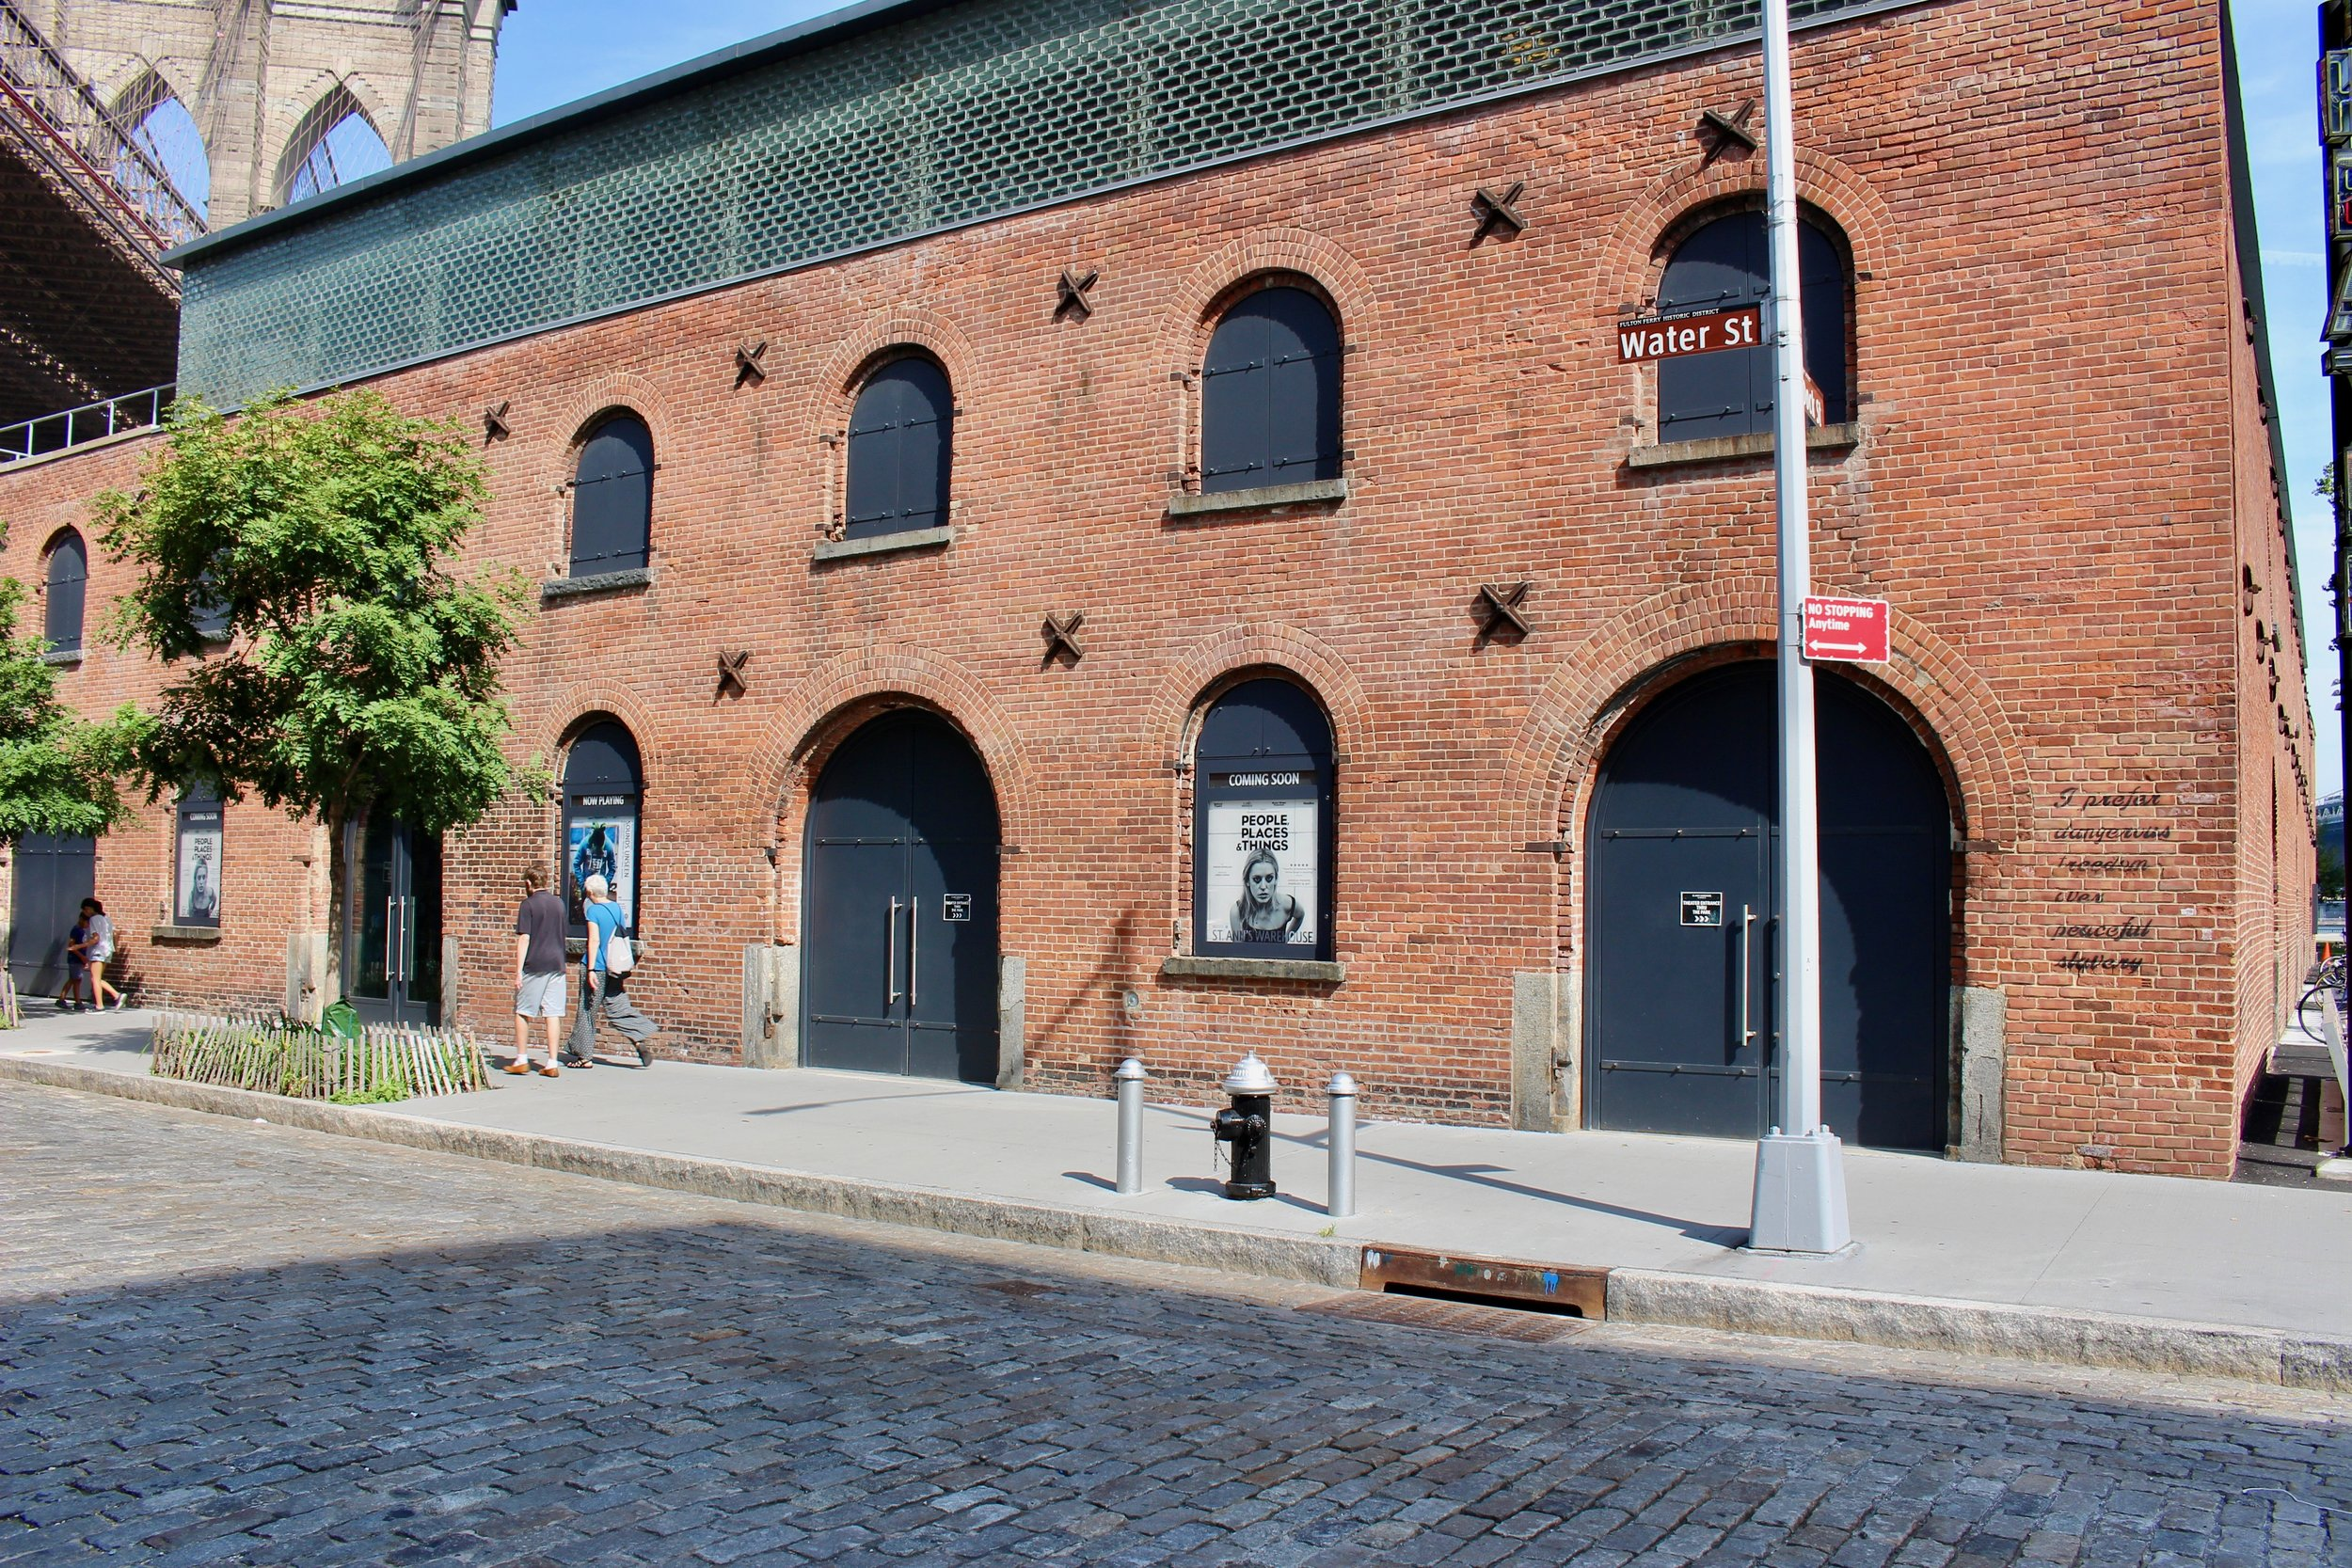 Stepping out of the Park onto Water Street, here is St. Ann's Warehouse, a converted performance space. Note the Brooklyn Bridge just behind it.